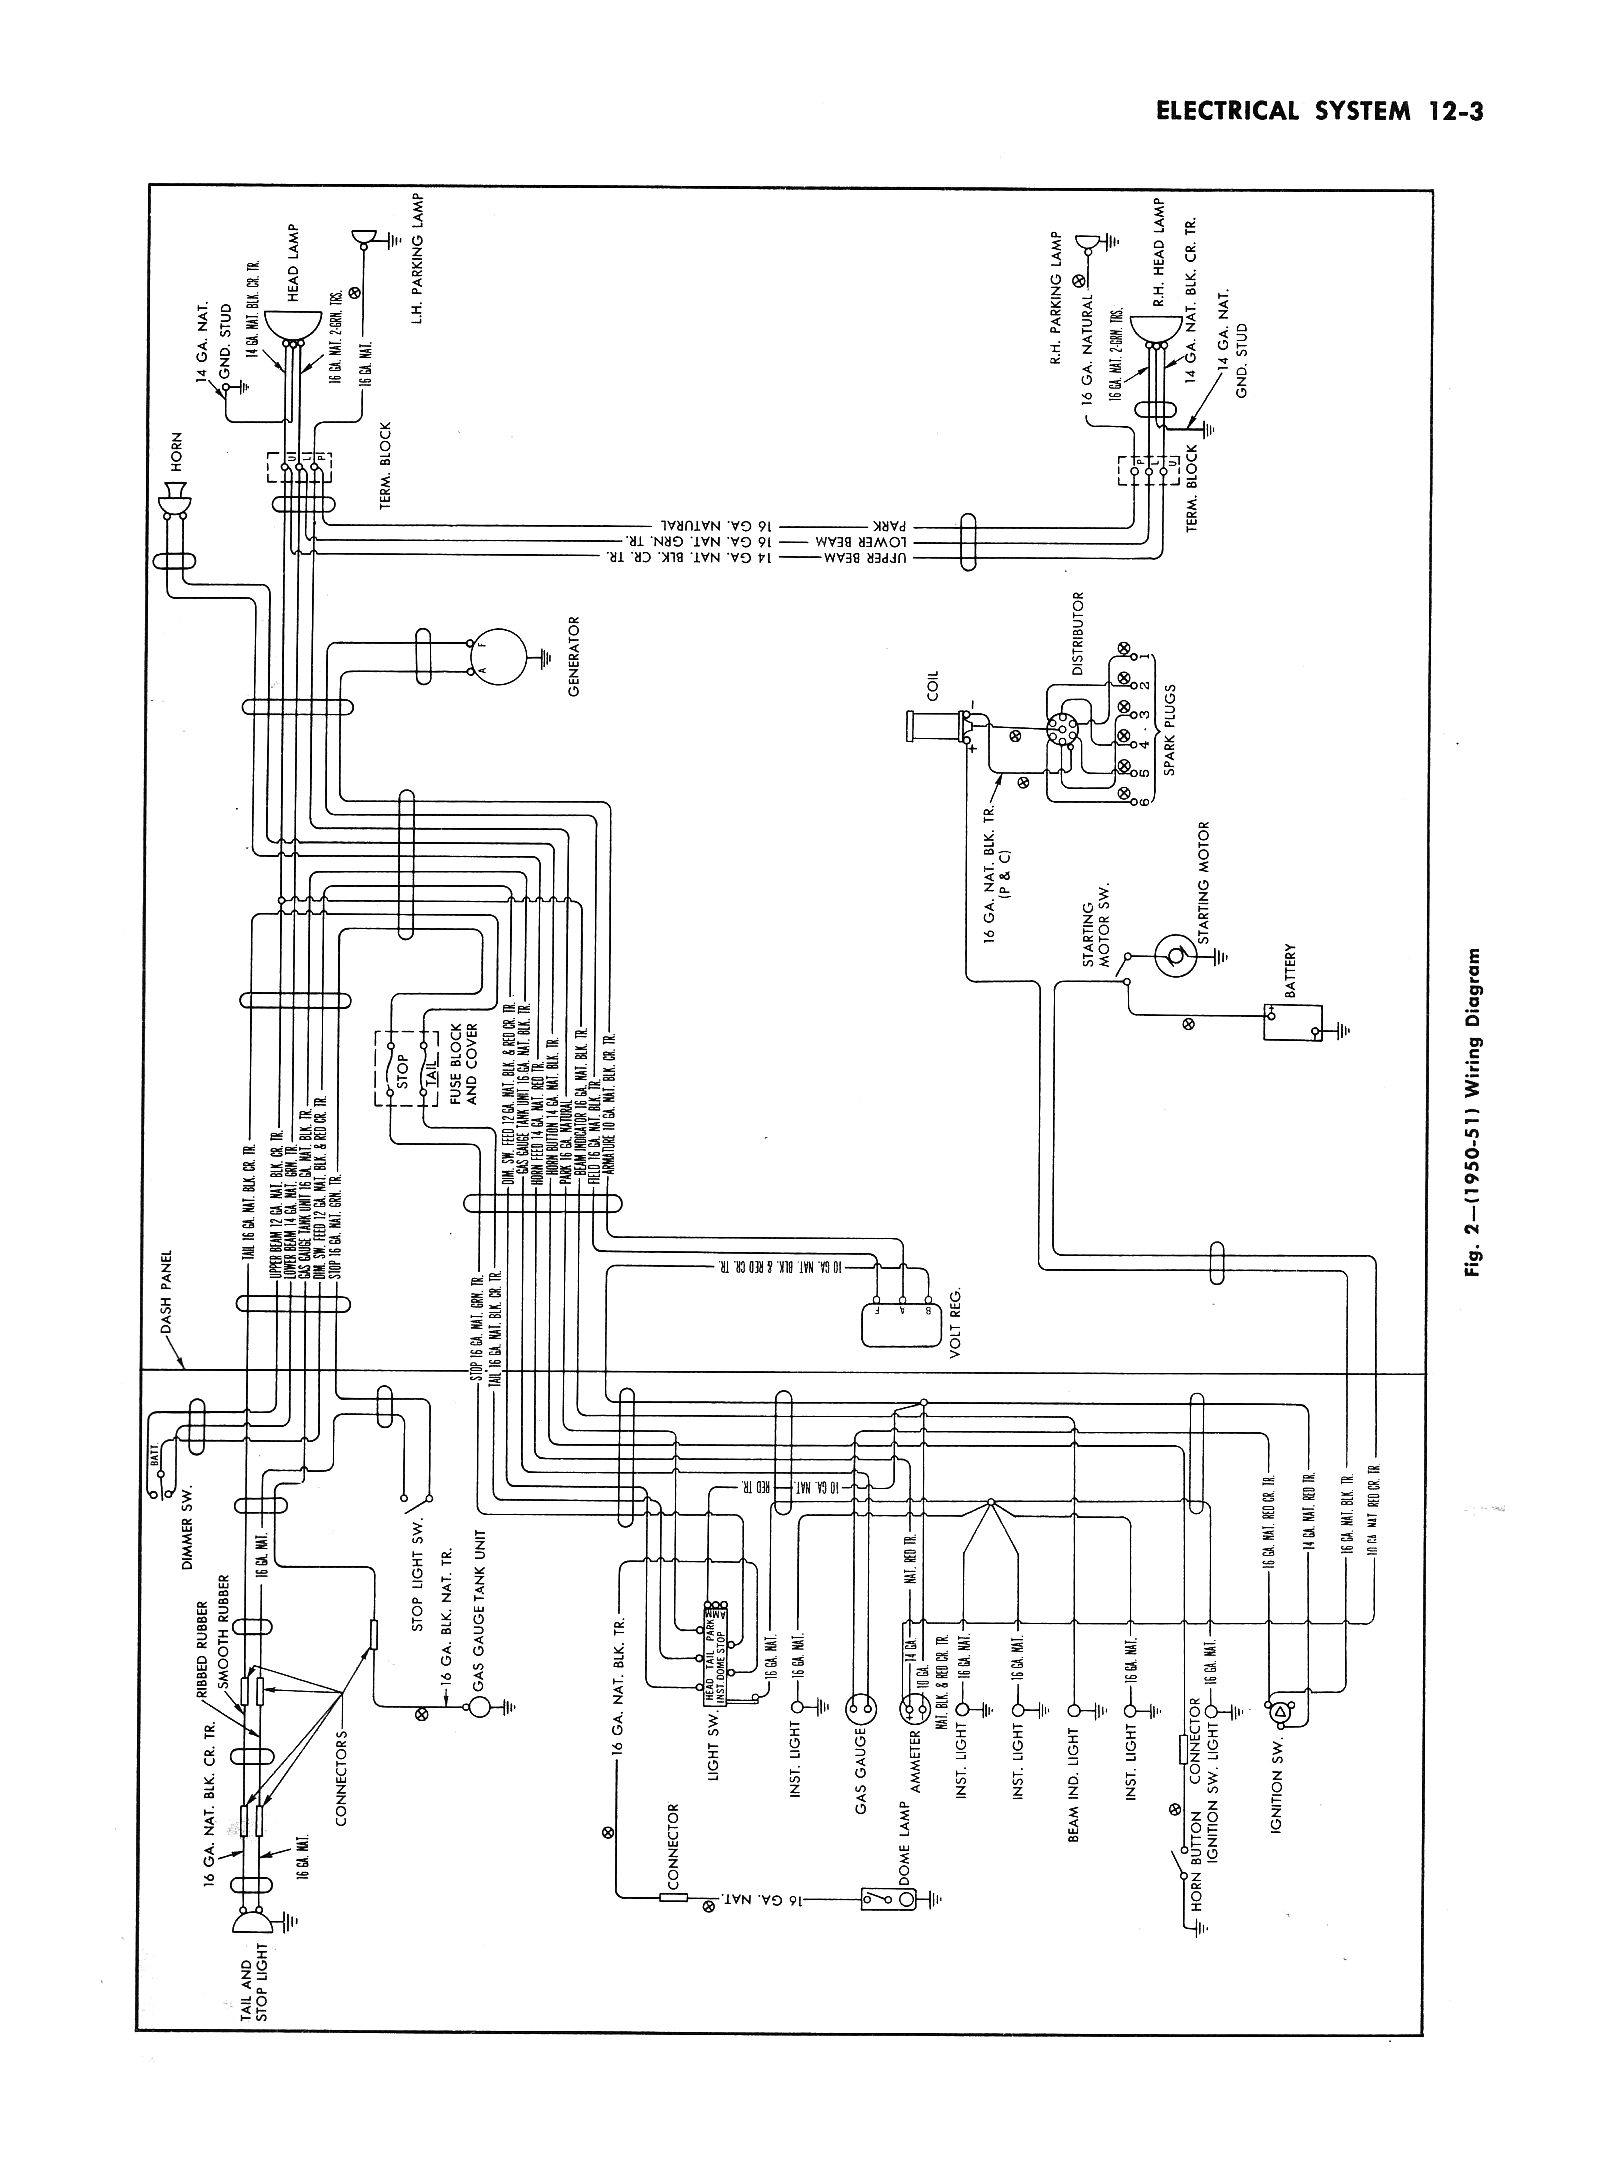 1968 camaro wiring diagram online 05 chevy equinox 1948-51 truck shop manual